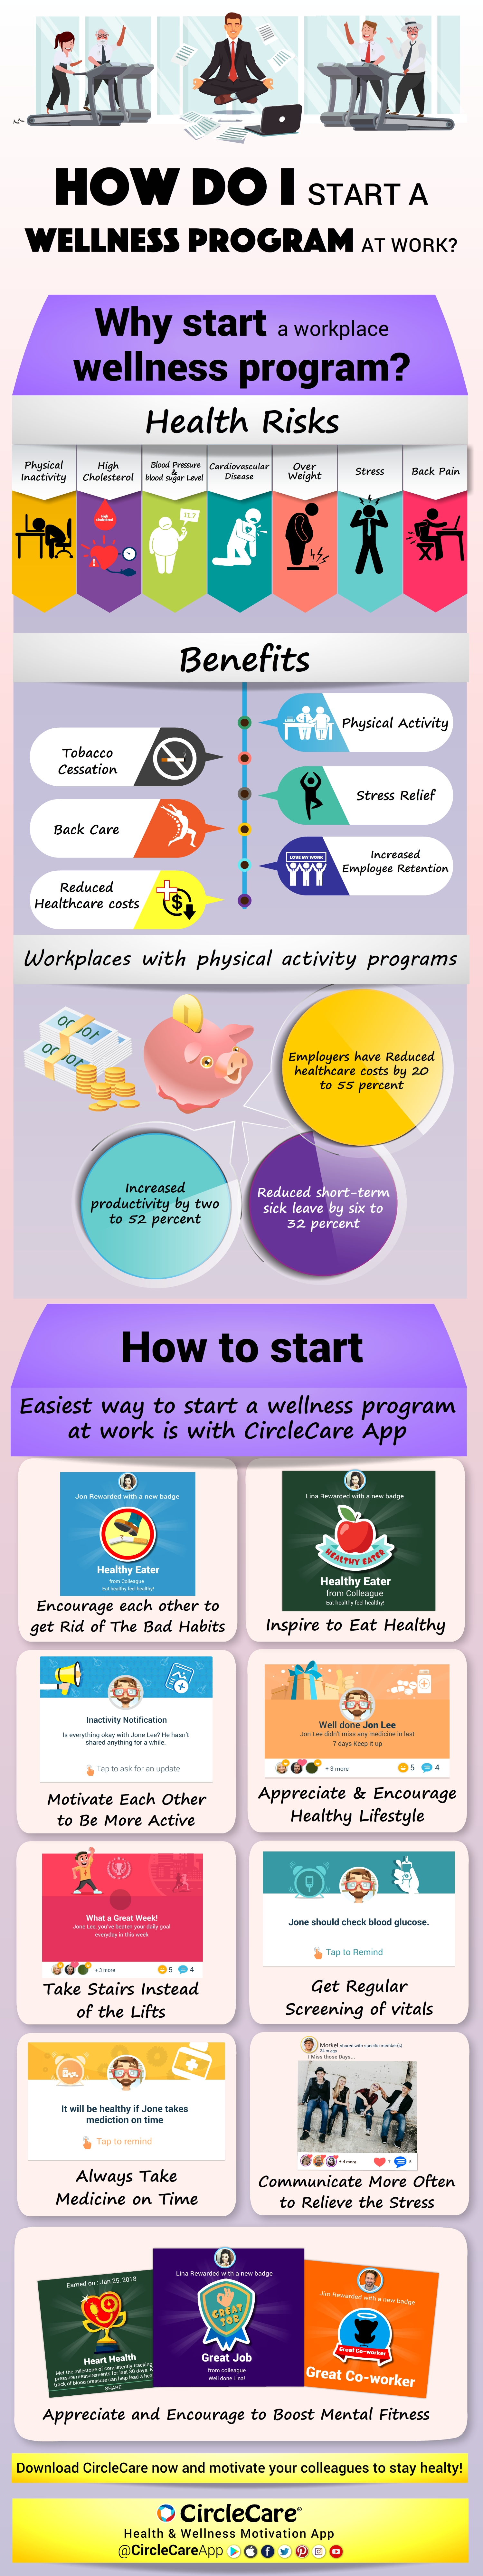 How-do-I-start-a-wellness-program-at-work-with-circlecare-app